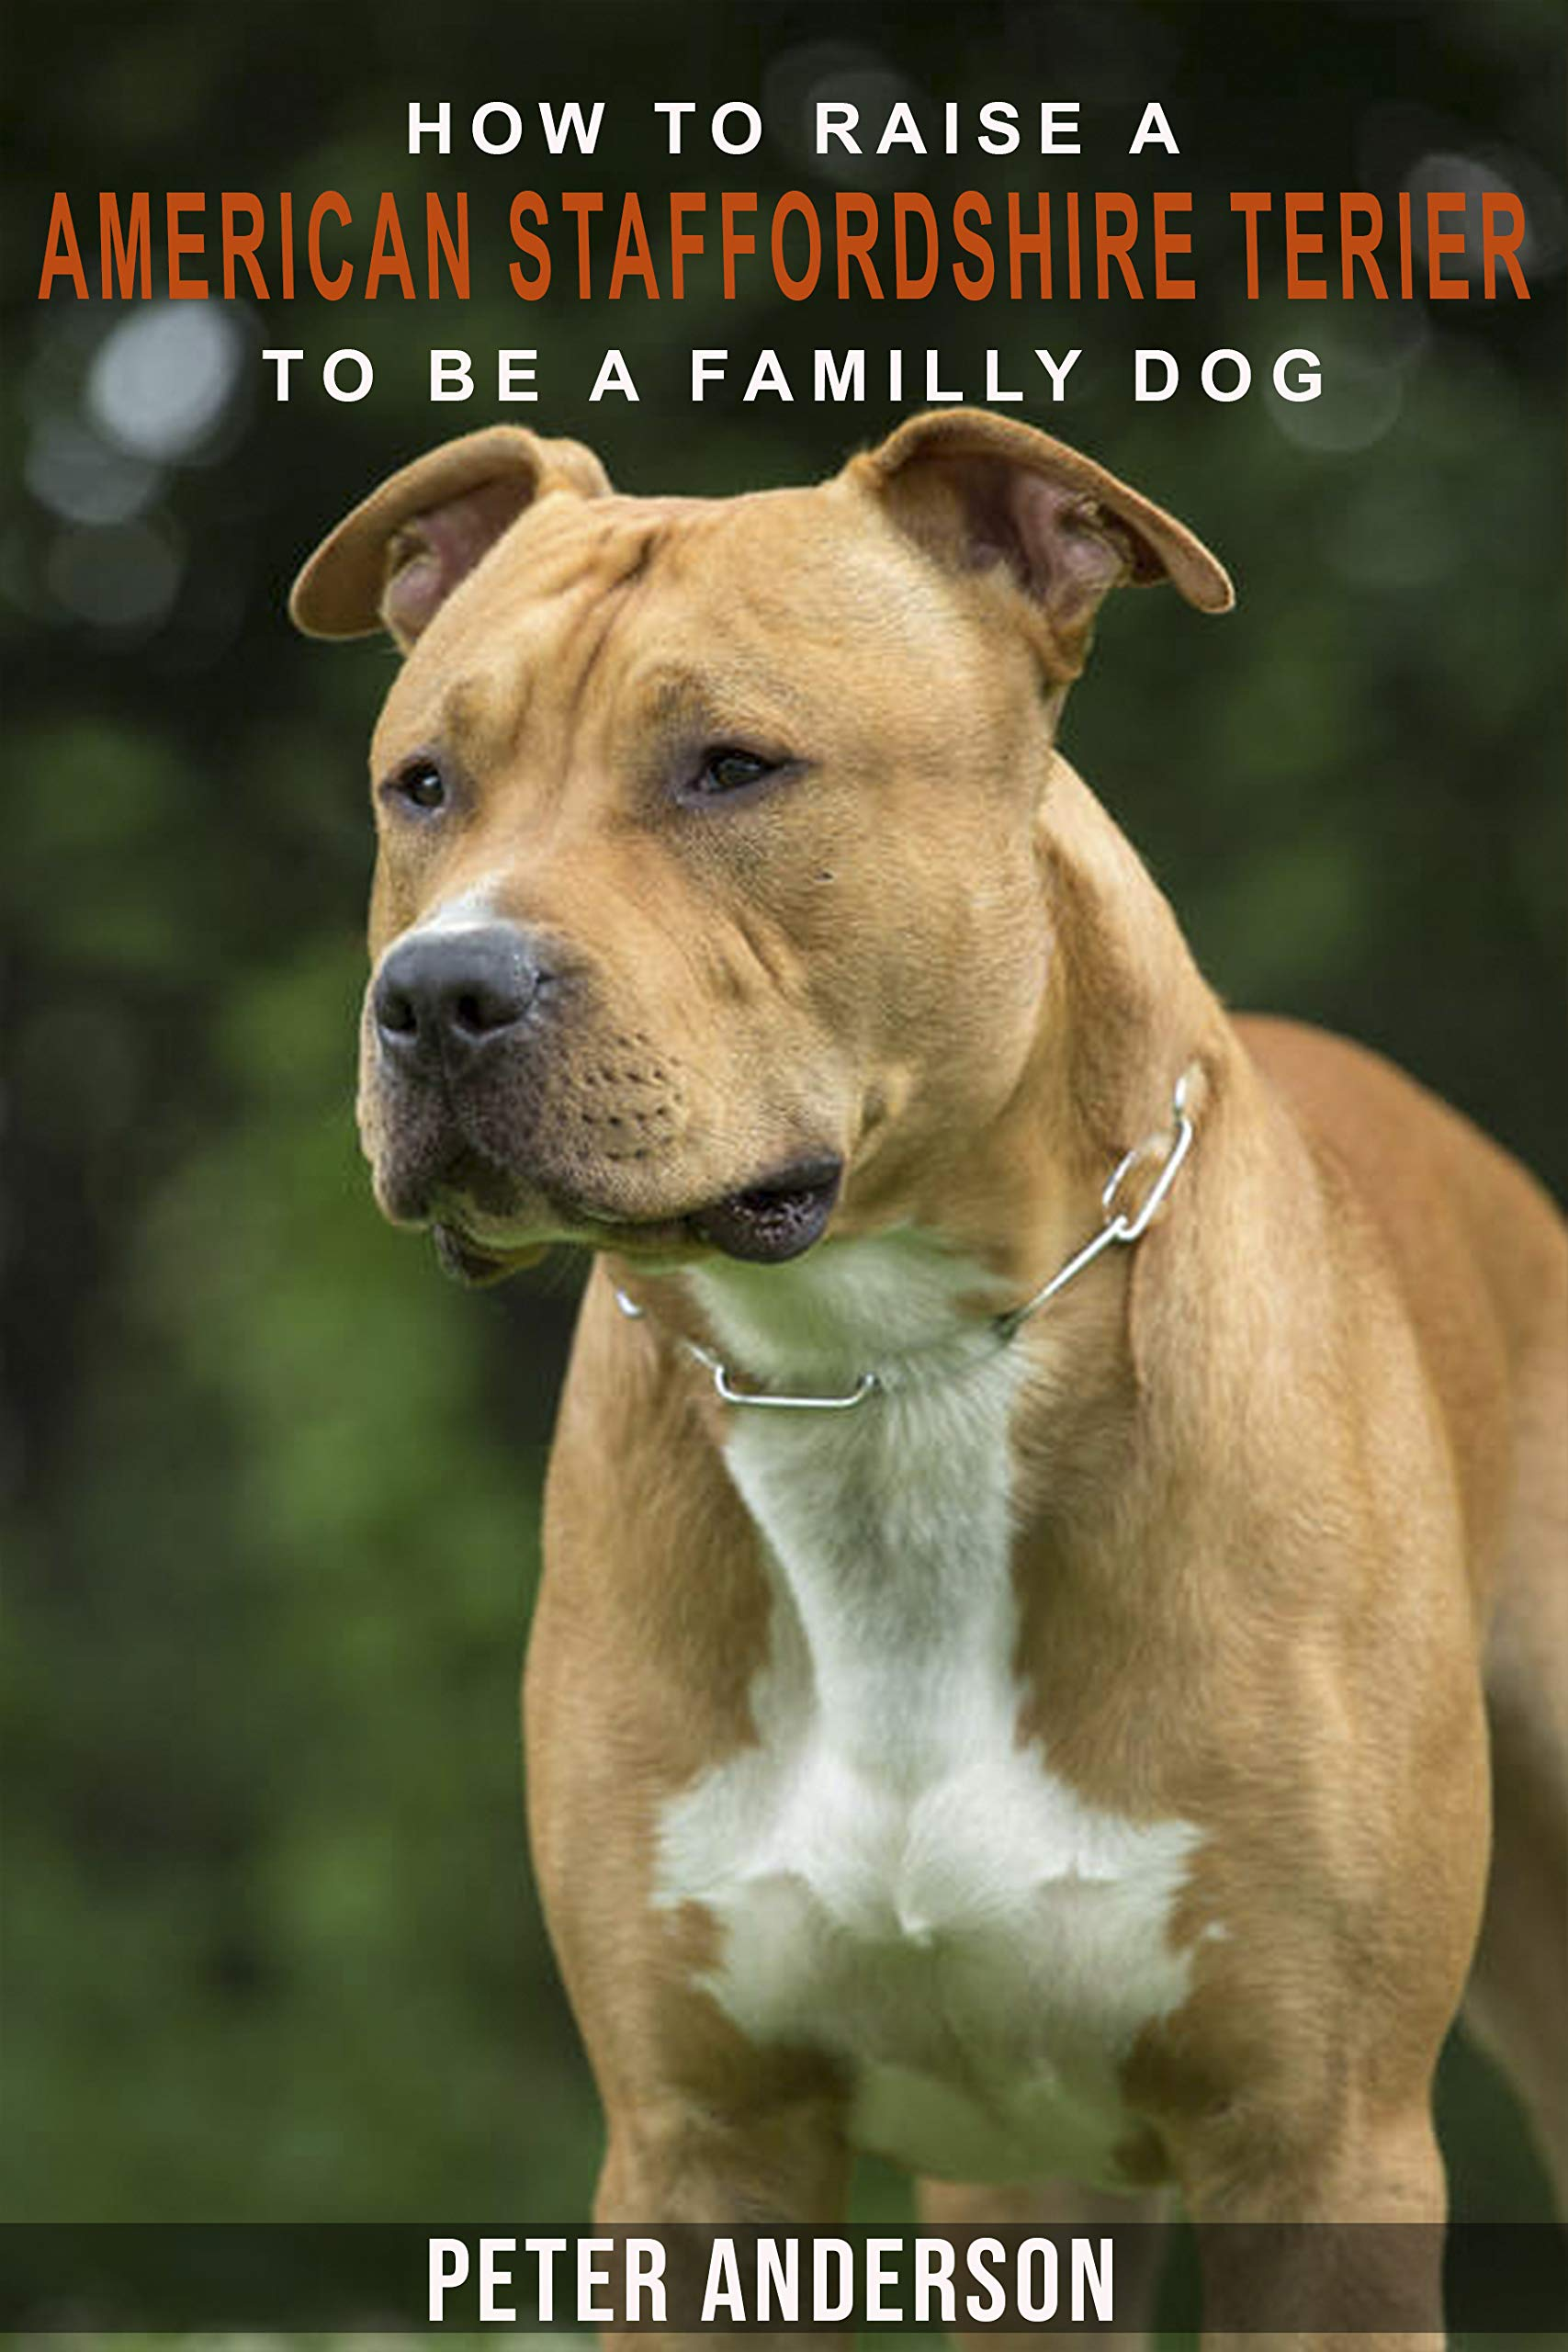 How to rasie a american staffordshire terier to be family dog:  American Staffordshire Terrier Socializing, Obedience Training,, Housetraining, Behavioral Training and much More